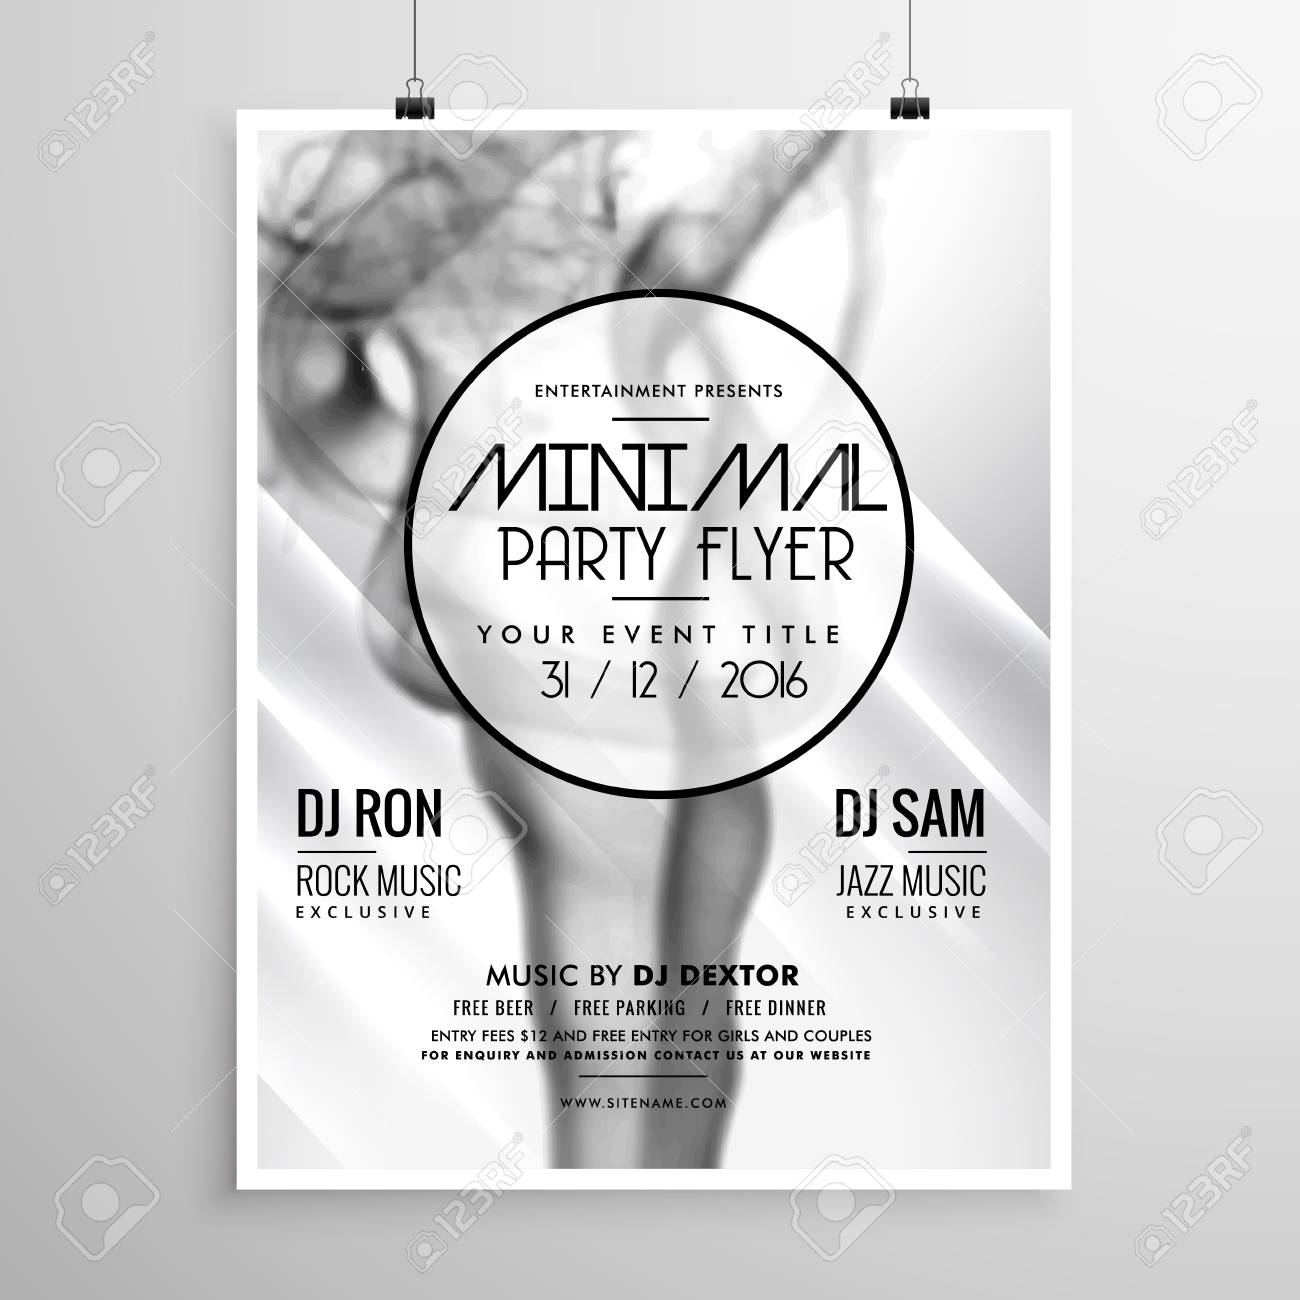 Party flyer background white